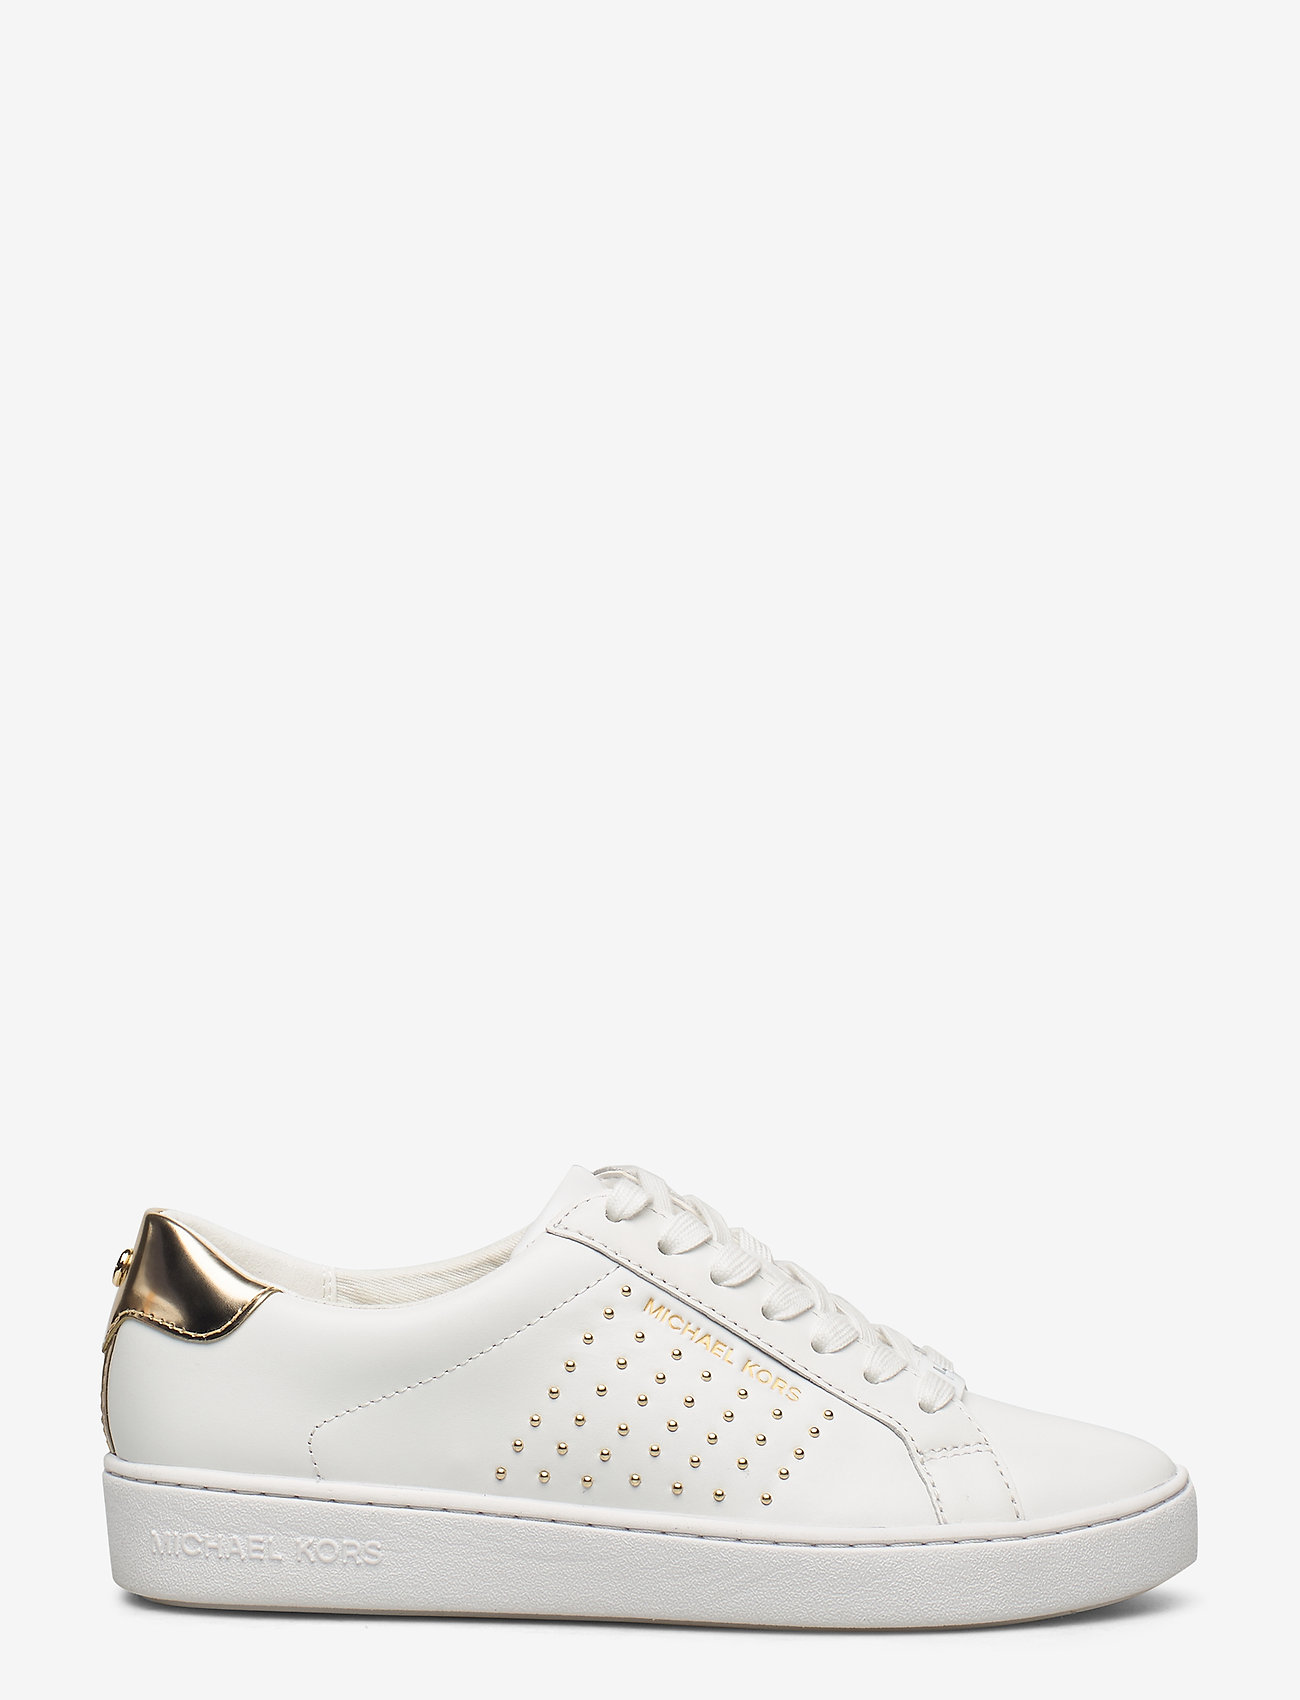 Michael Kors Shoes - IRVING LACE UP - lage sneakers - optic white - 1